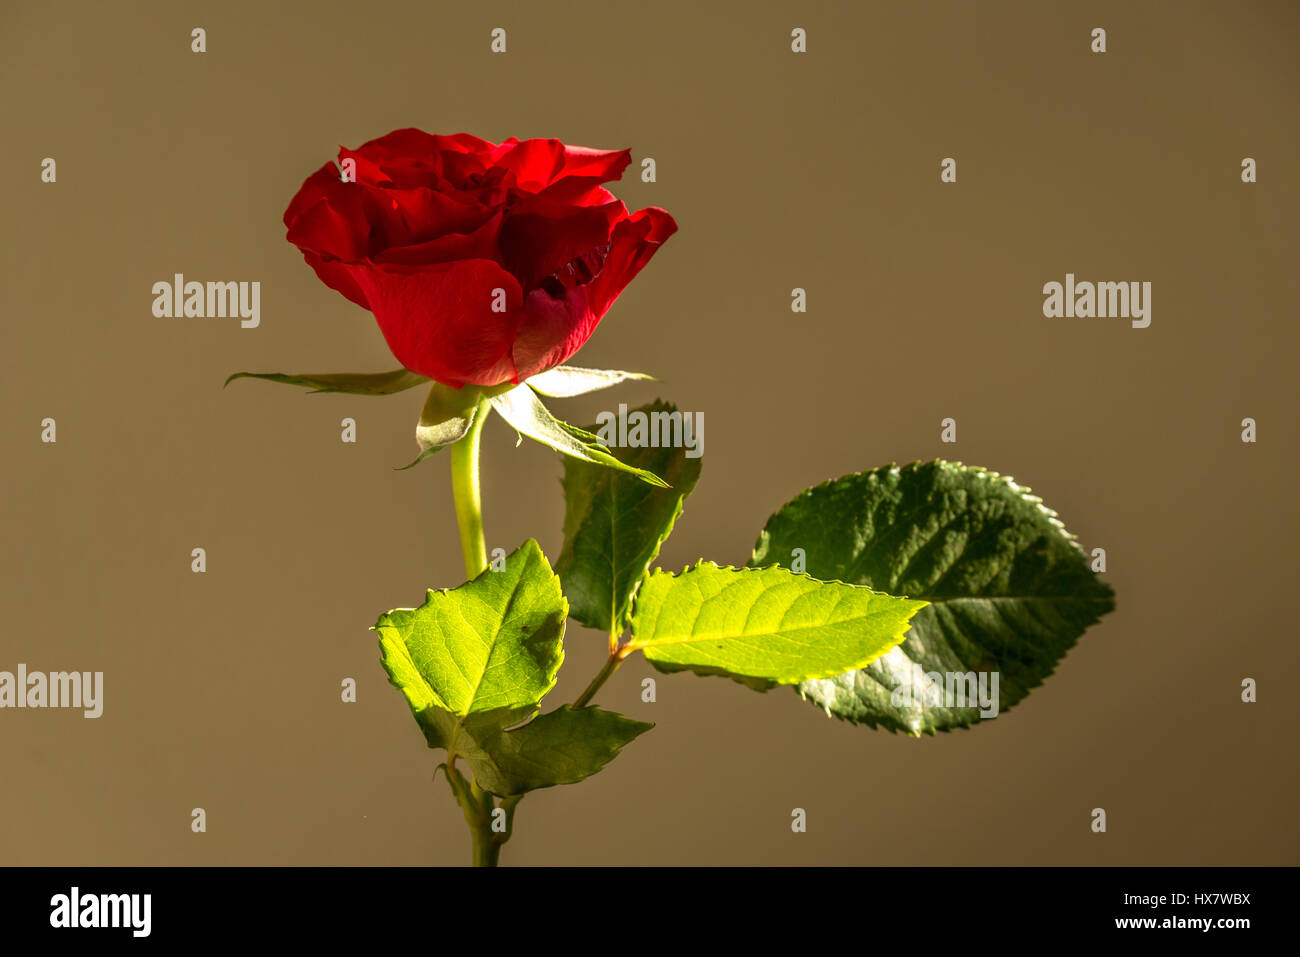 A single stem red rose, Rosaceae, with soft natural lighting from a window - Stock Image